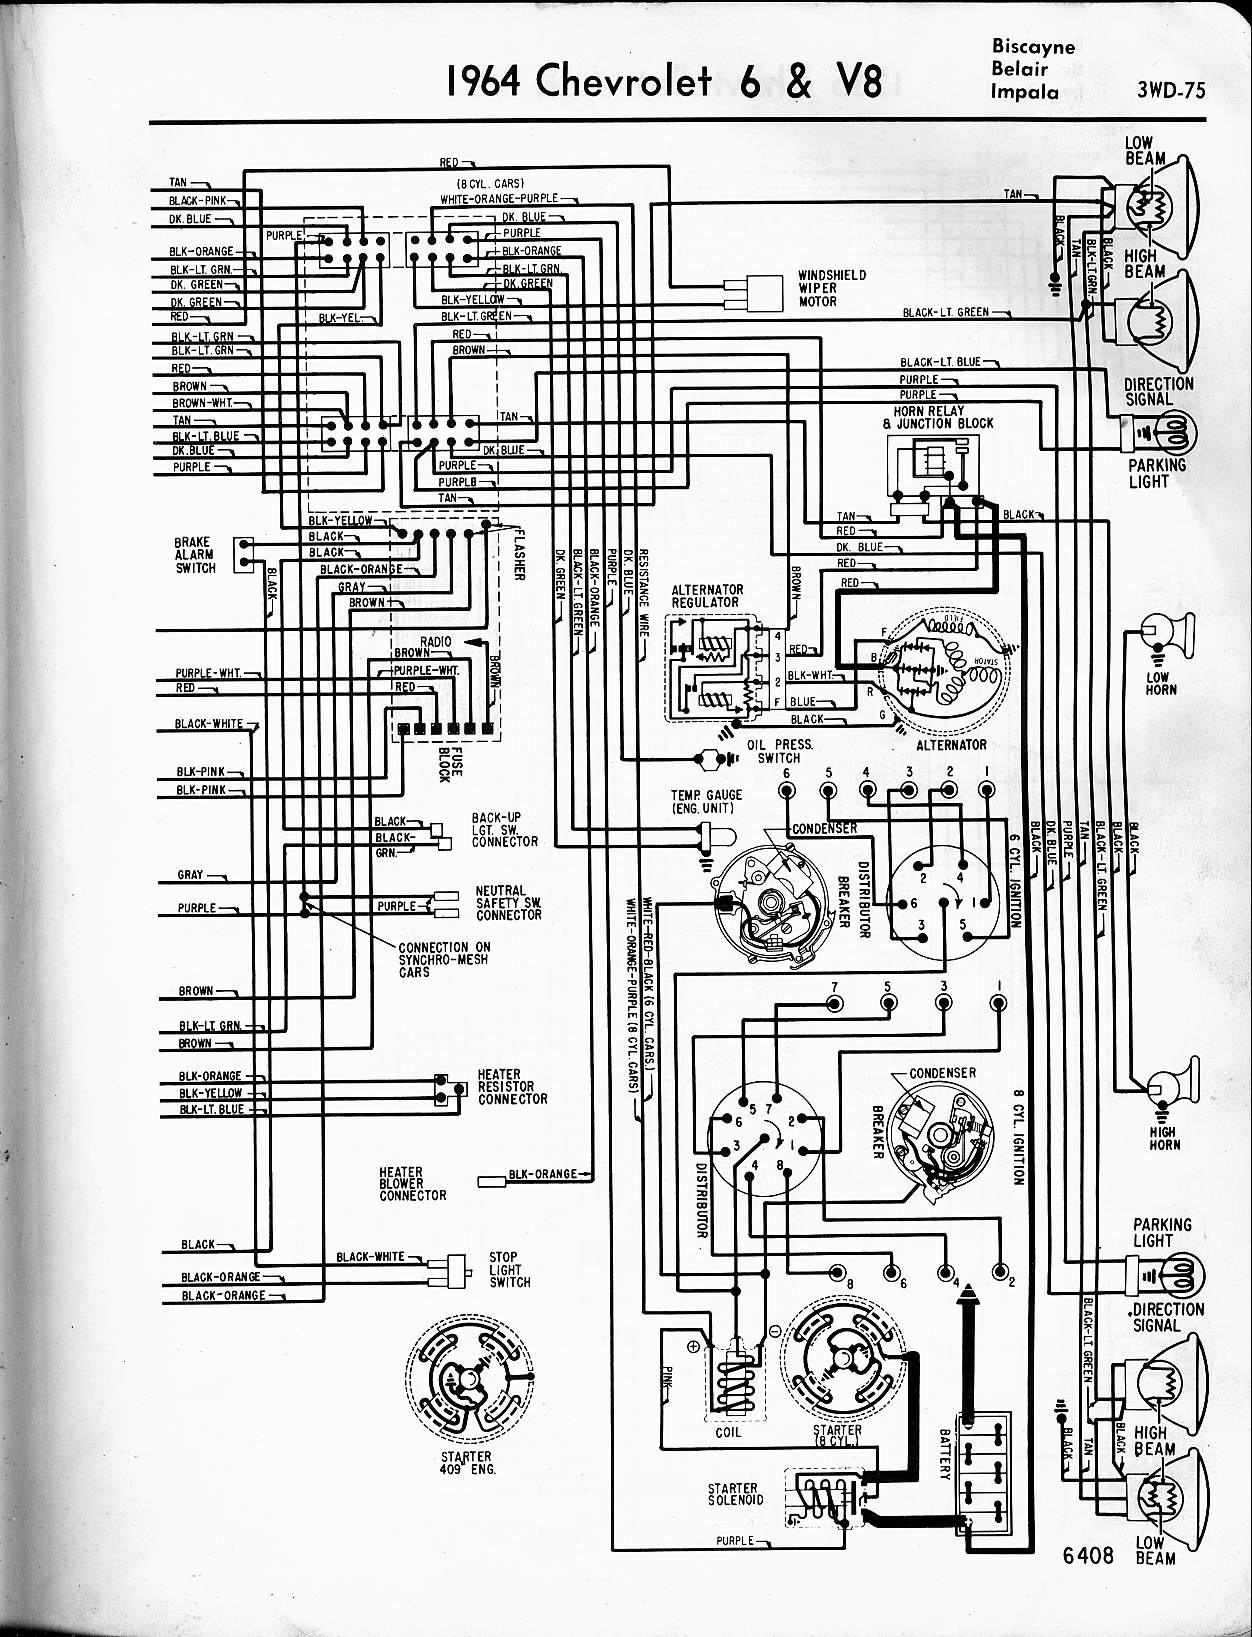 1963 Chevy Starter Wiring Diagram Download Diagrams 1954 Corvette 36 Bel Air